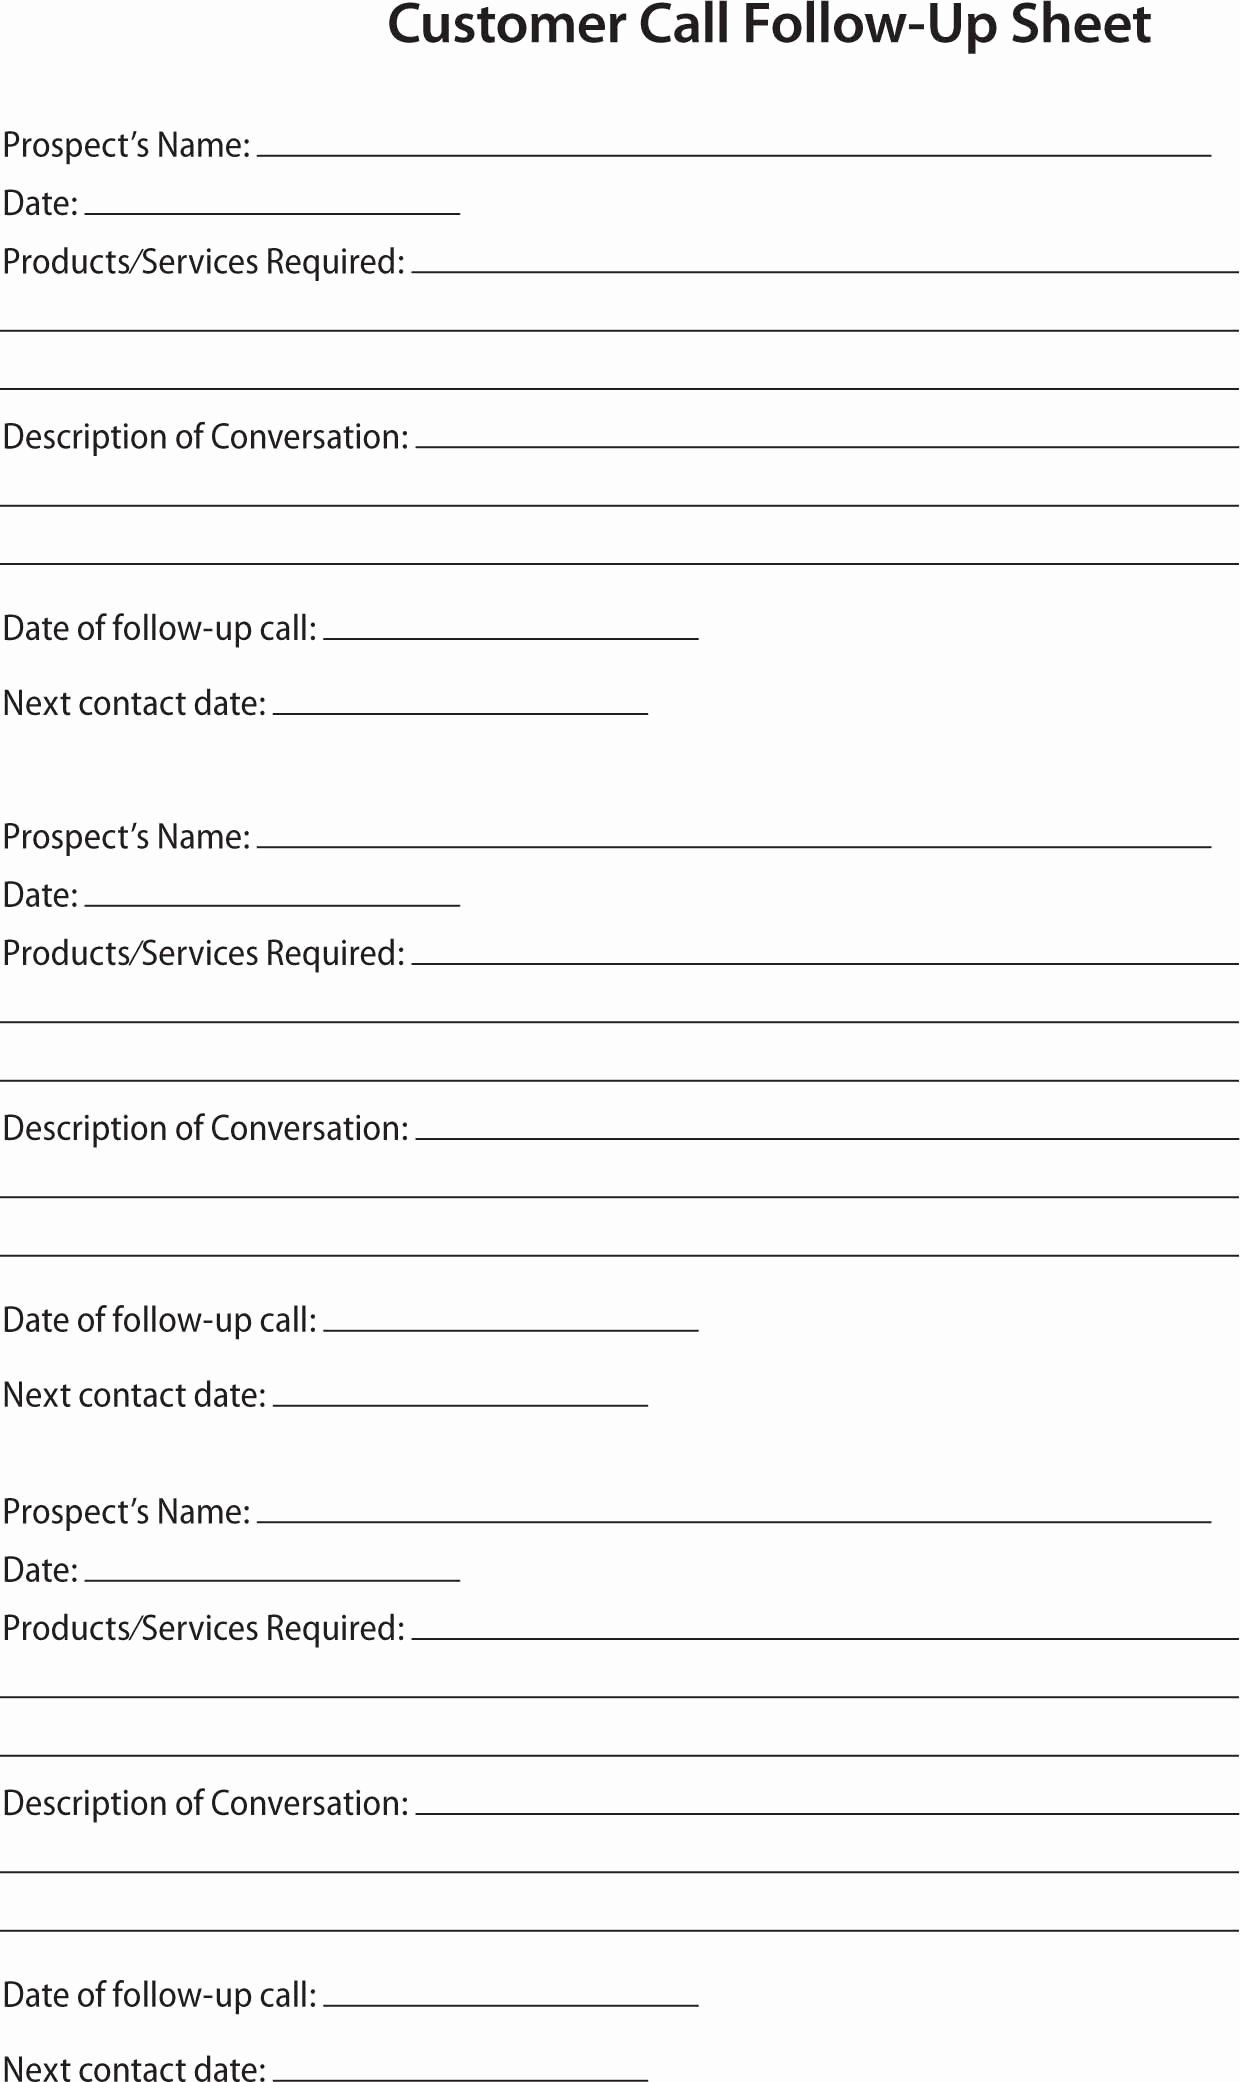 30 Sales Calling Plan Template in 2020 (With images